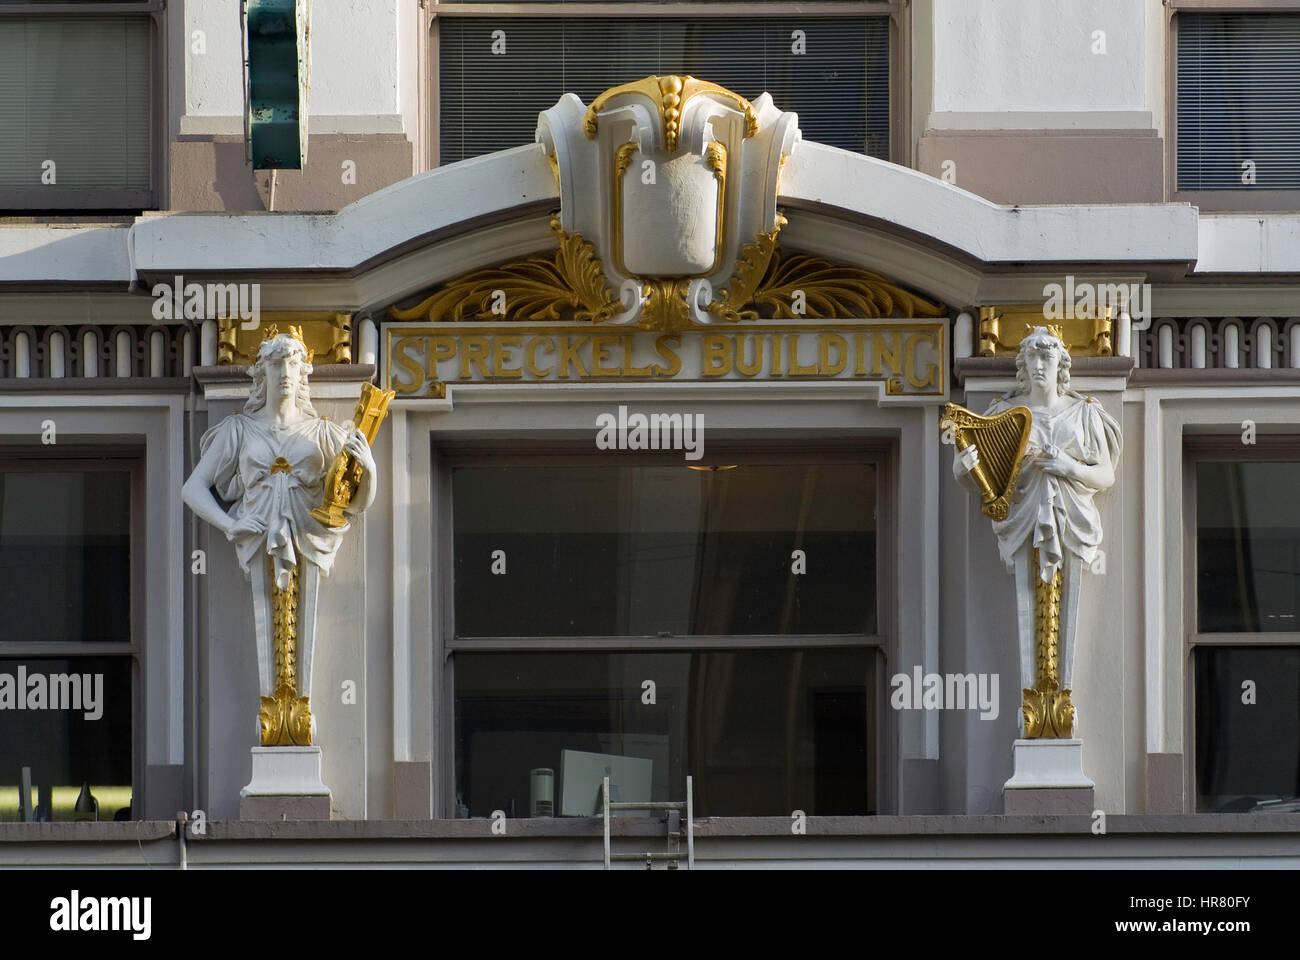 Statues at historic Spreckels Building on Broadway in San Diego, California, USA - Stock Image